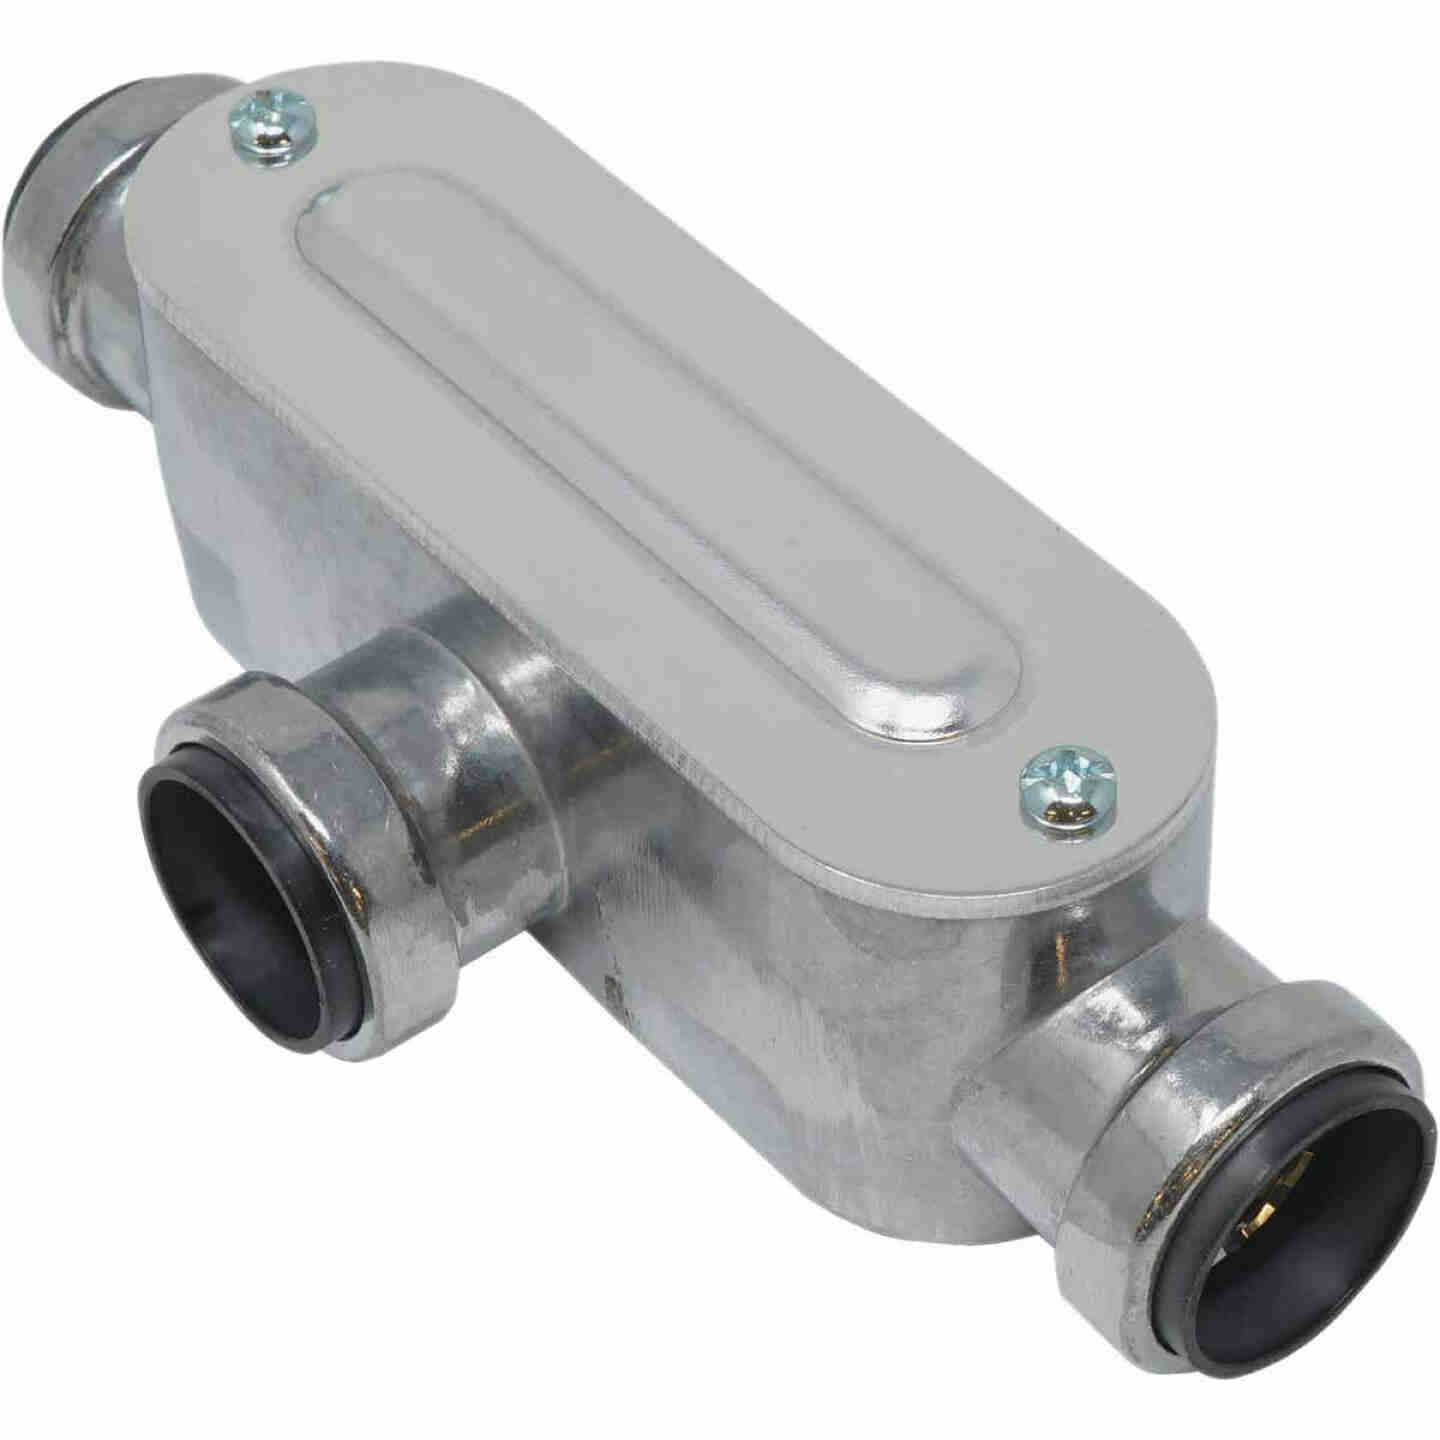 Southwire SimPush 3/4 In. EMT Push-To-Install Type-T Conduit Body Image 1